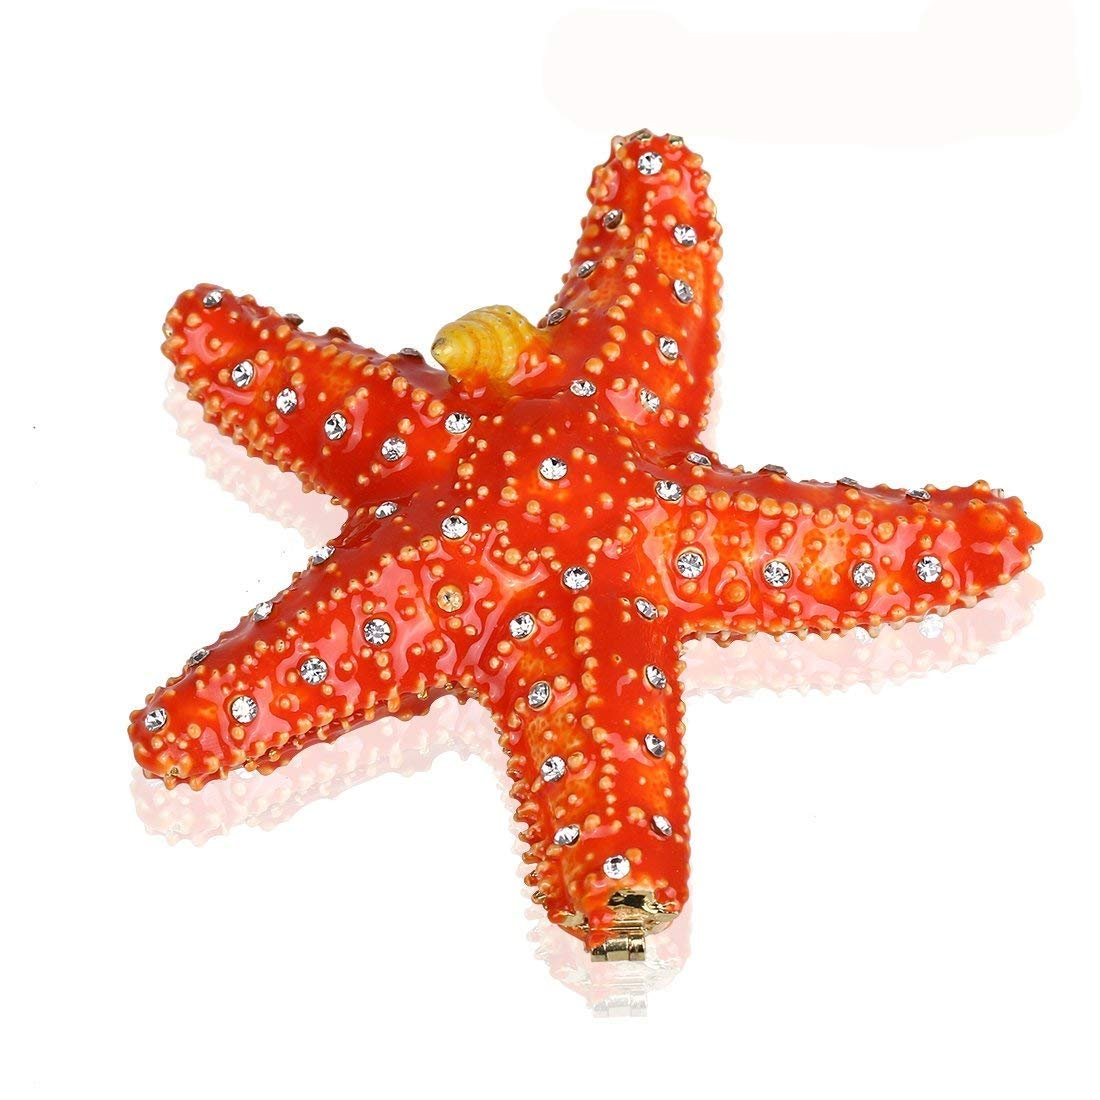 YUFENG Trinket Box Hinged Starfish Figurine Bejeweled Ring Holder Christmas Decoration Collectible Gift